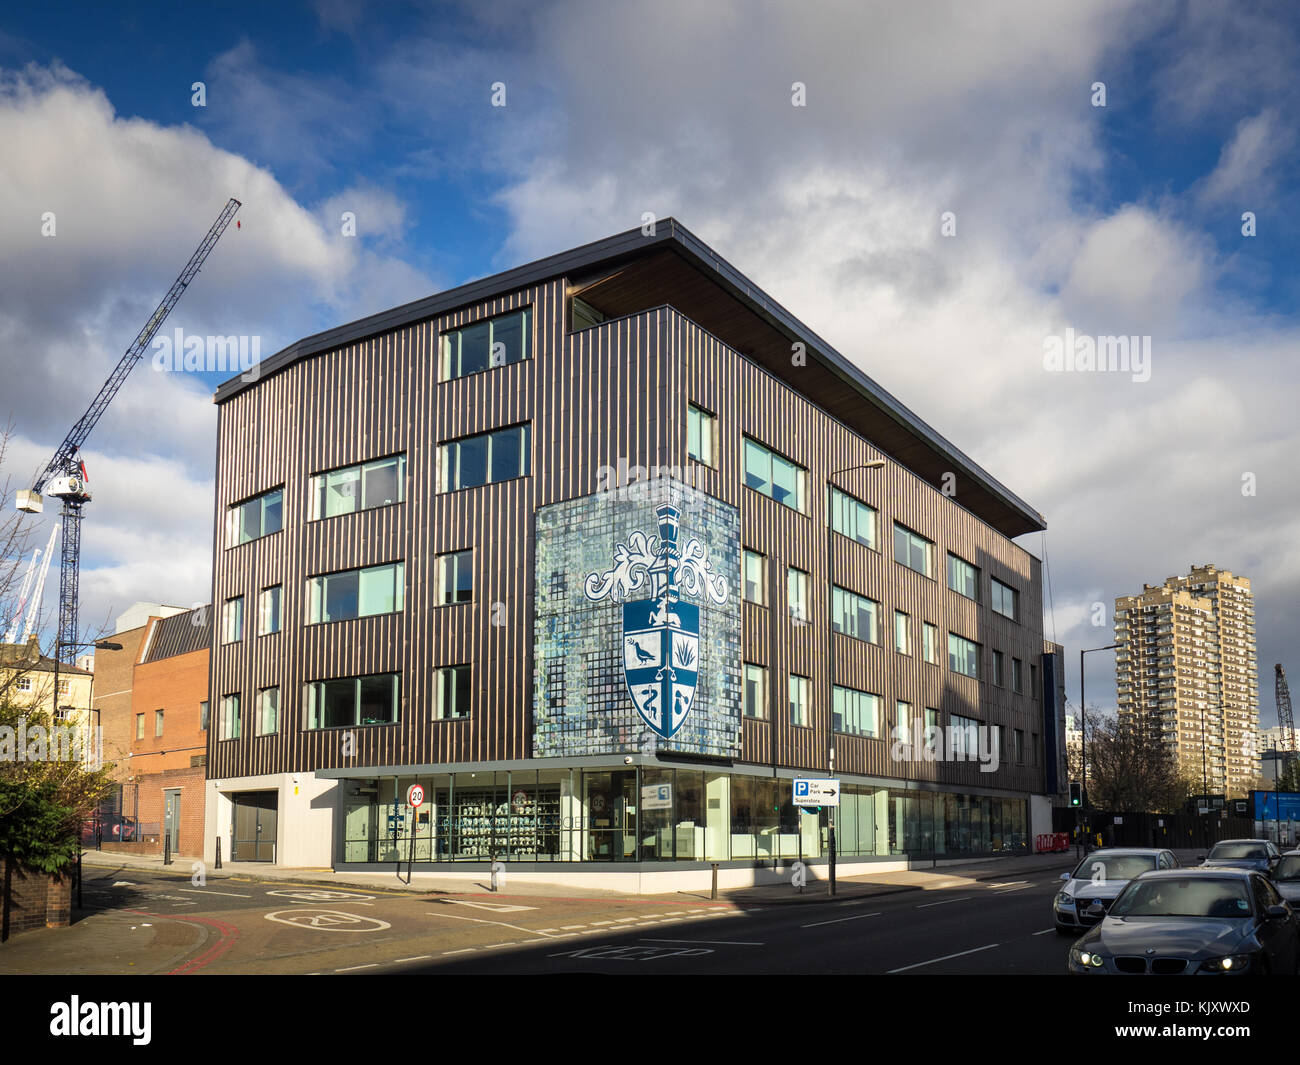 Royal Pharmaceutical Society siège social à East Smithfield, East London, Royaume-Uni, ouvert en 2015, Photo Stock